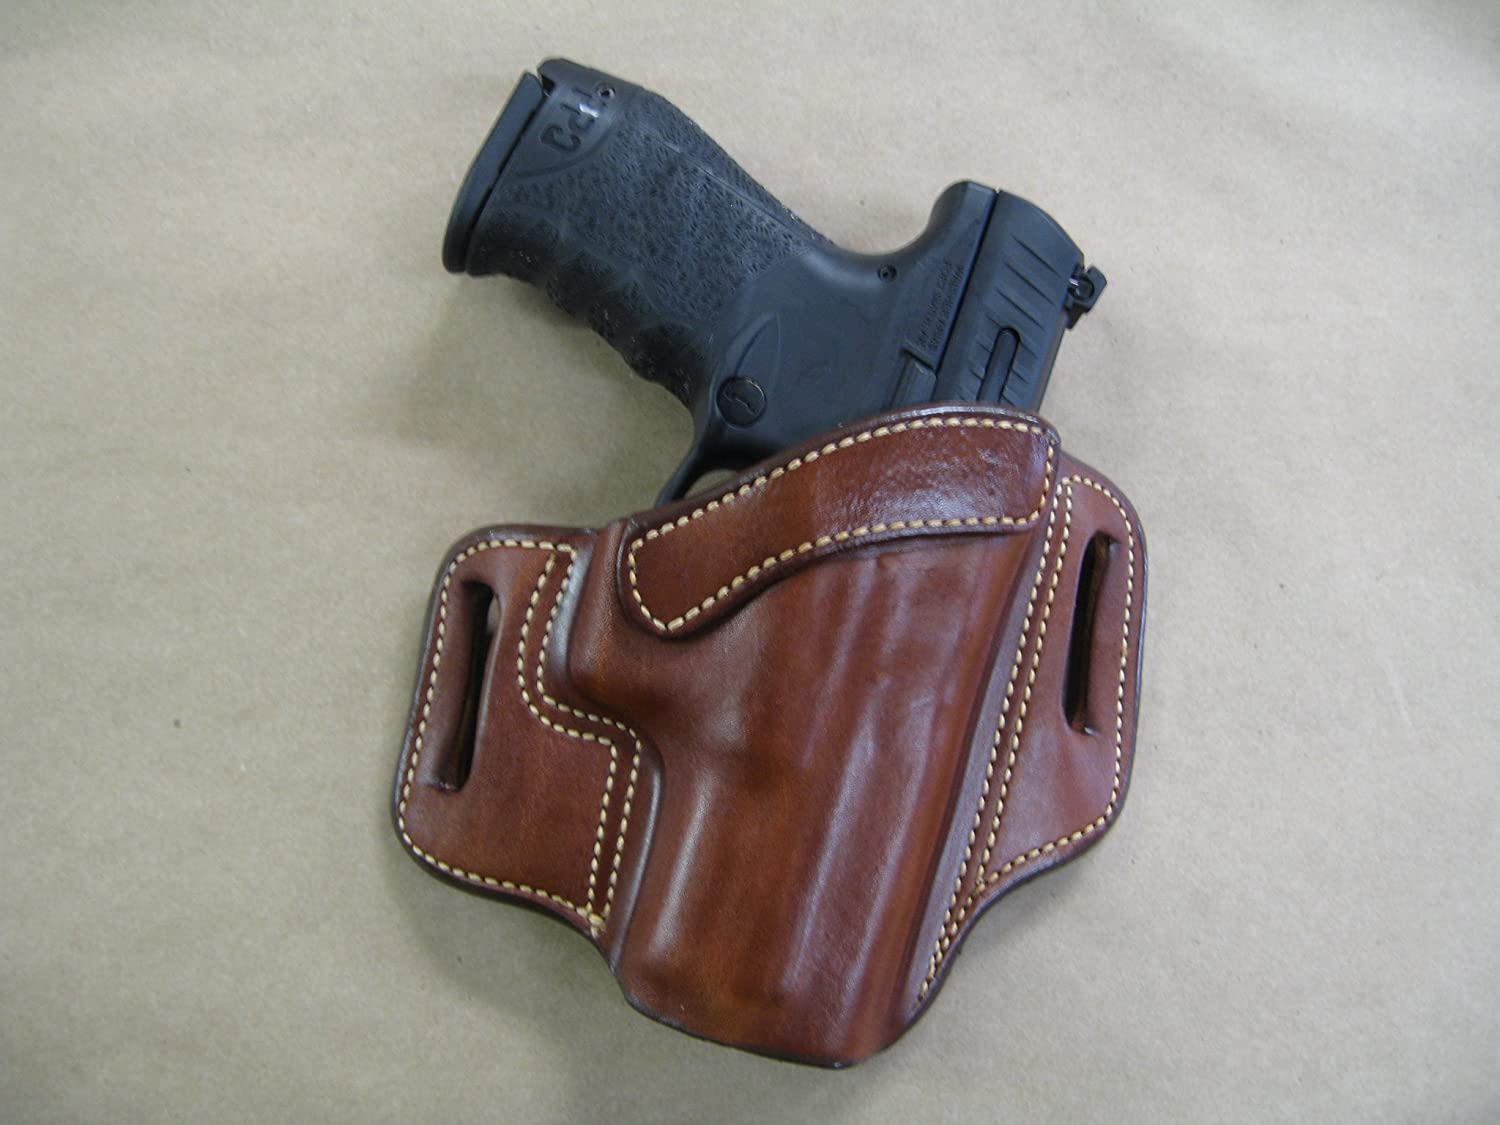 Azula OWB Leather 2 Slot Molded Pancake Belt Holster for Walther PPQ M1, M2  9mm /  40 CCW TAN RH